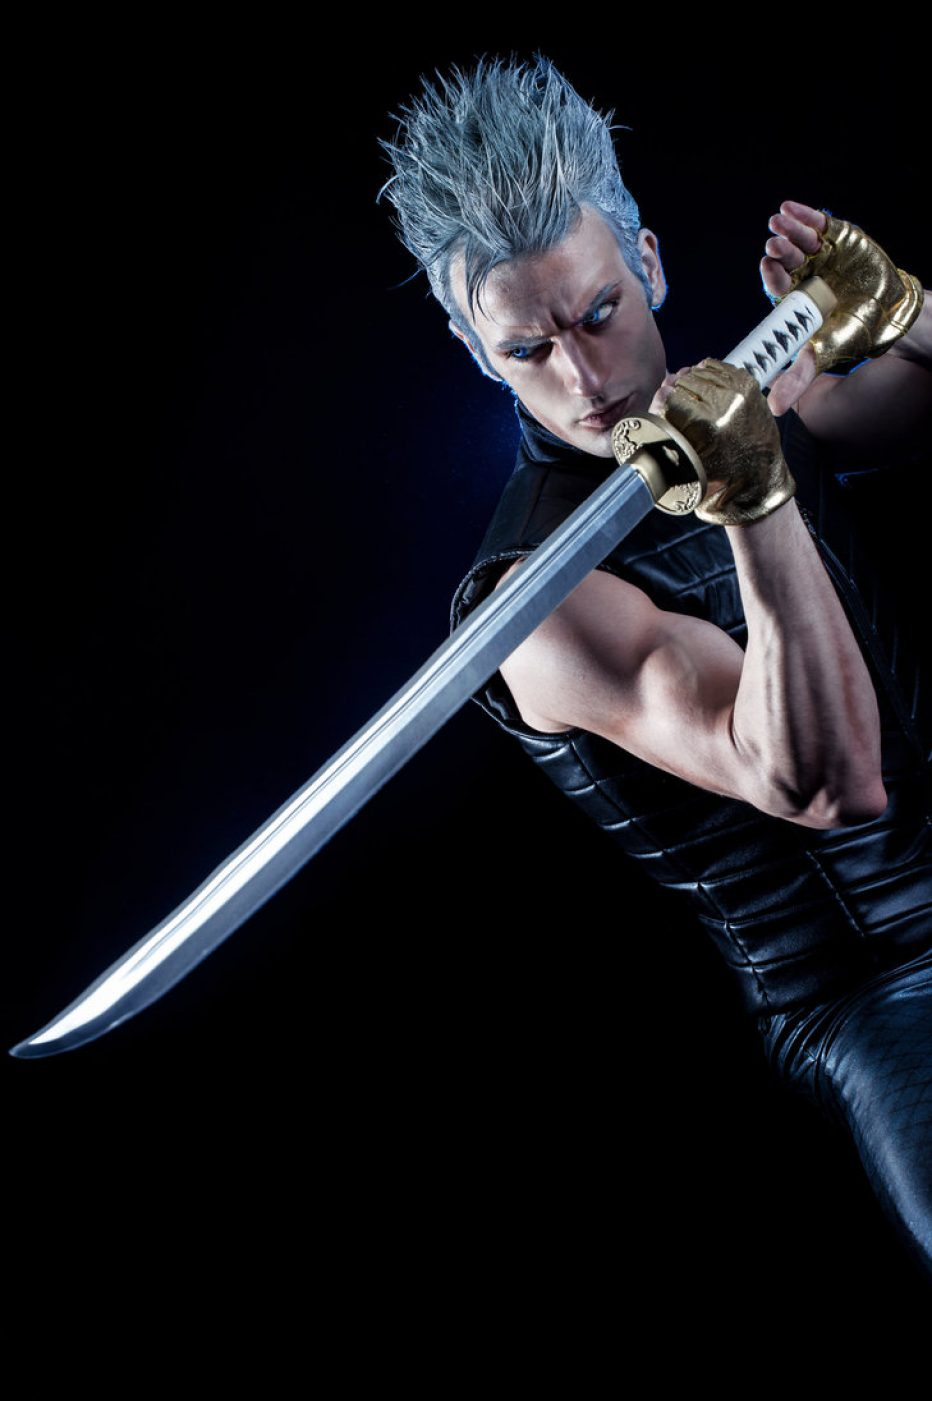 Devil-May-Cry-Vergil-Cosplay-Gamers-Heroes-3.jpg